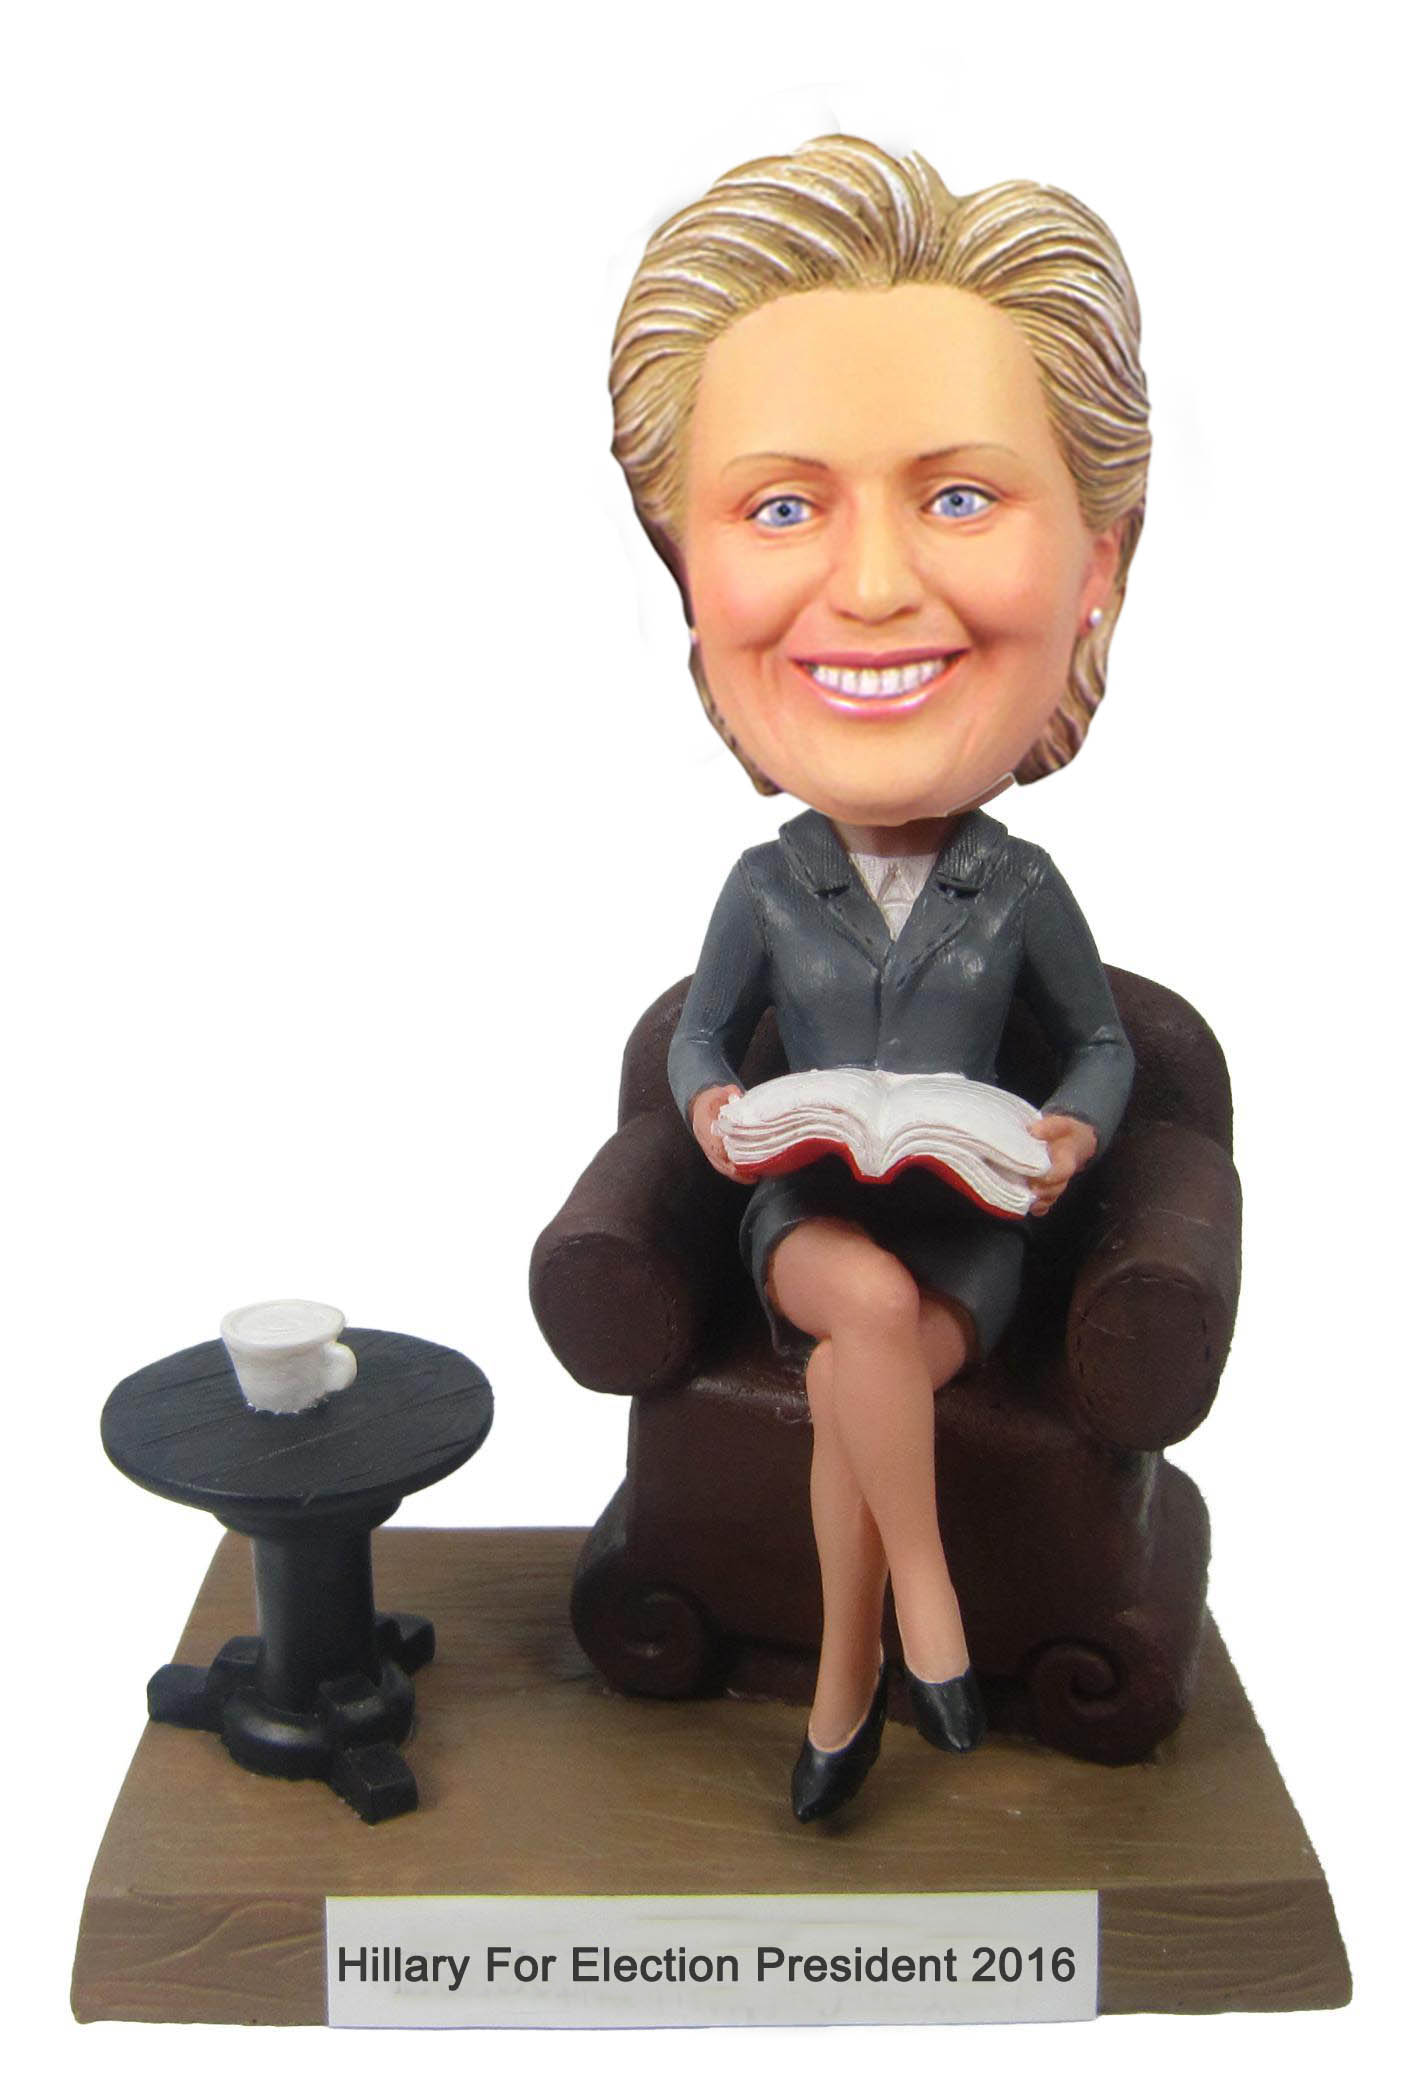 Hillary for election president 2016: Hillary clinton polymer clay dolls